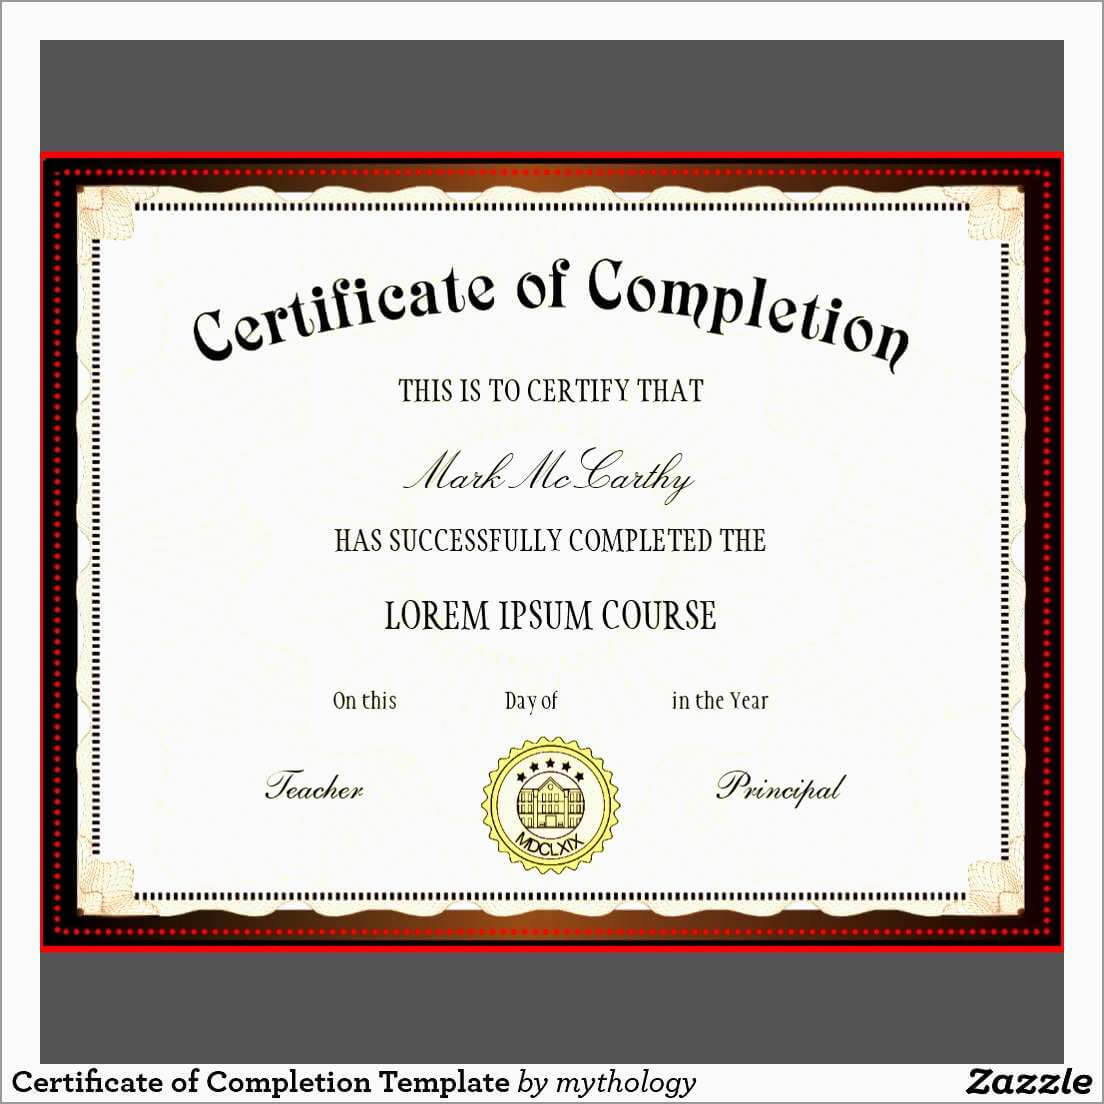 Free Premarital Counseling Certificate Of Completion In Premarital Counseling Certificate Of Completion Template